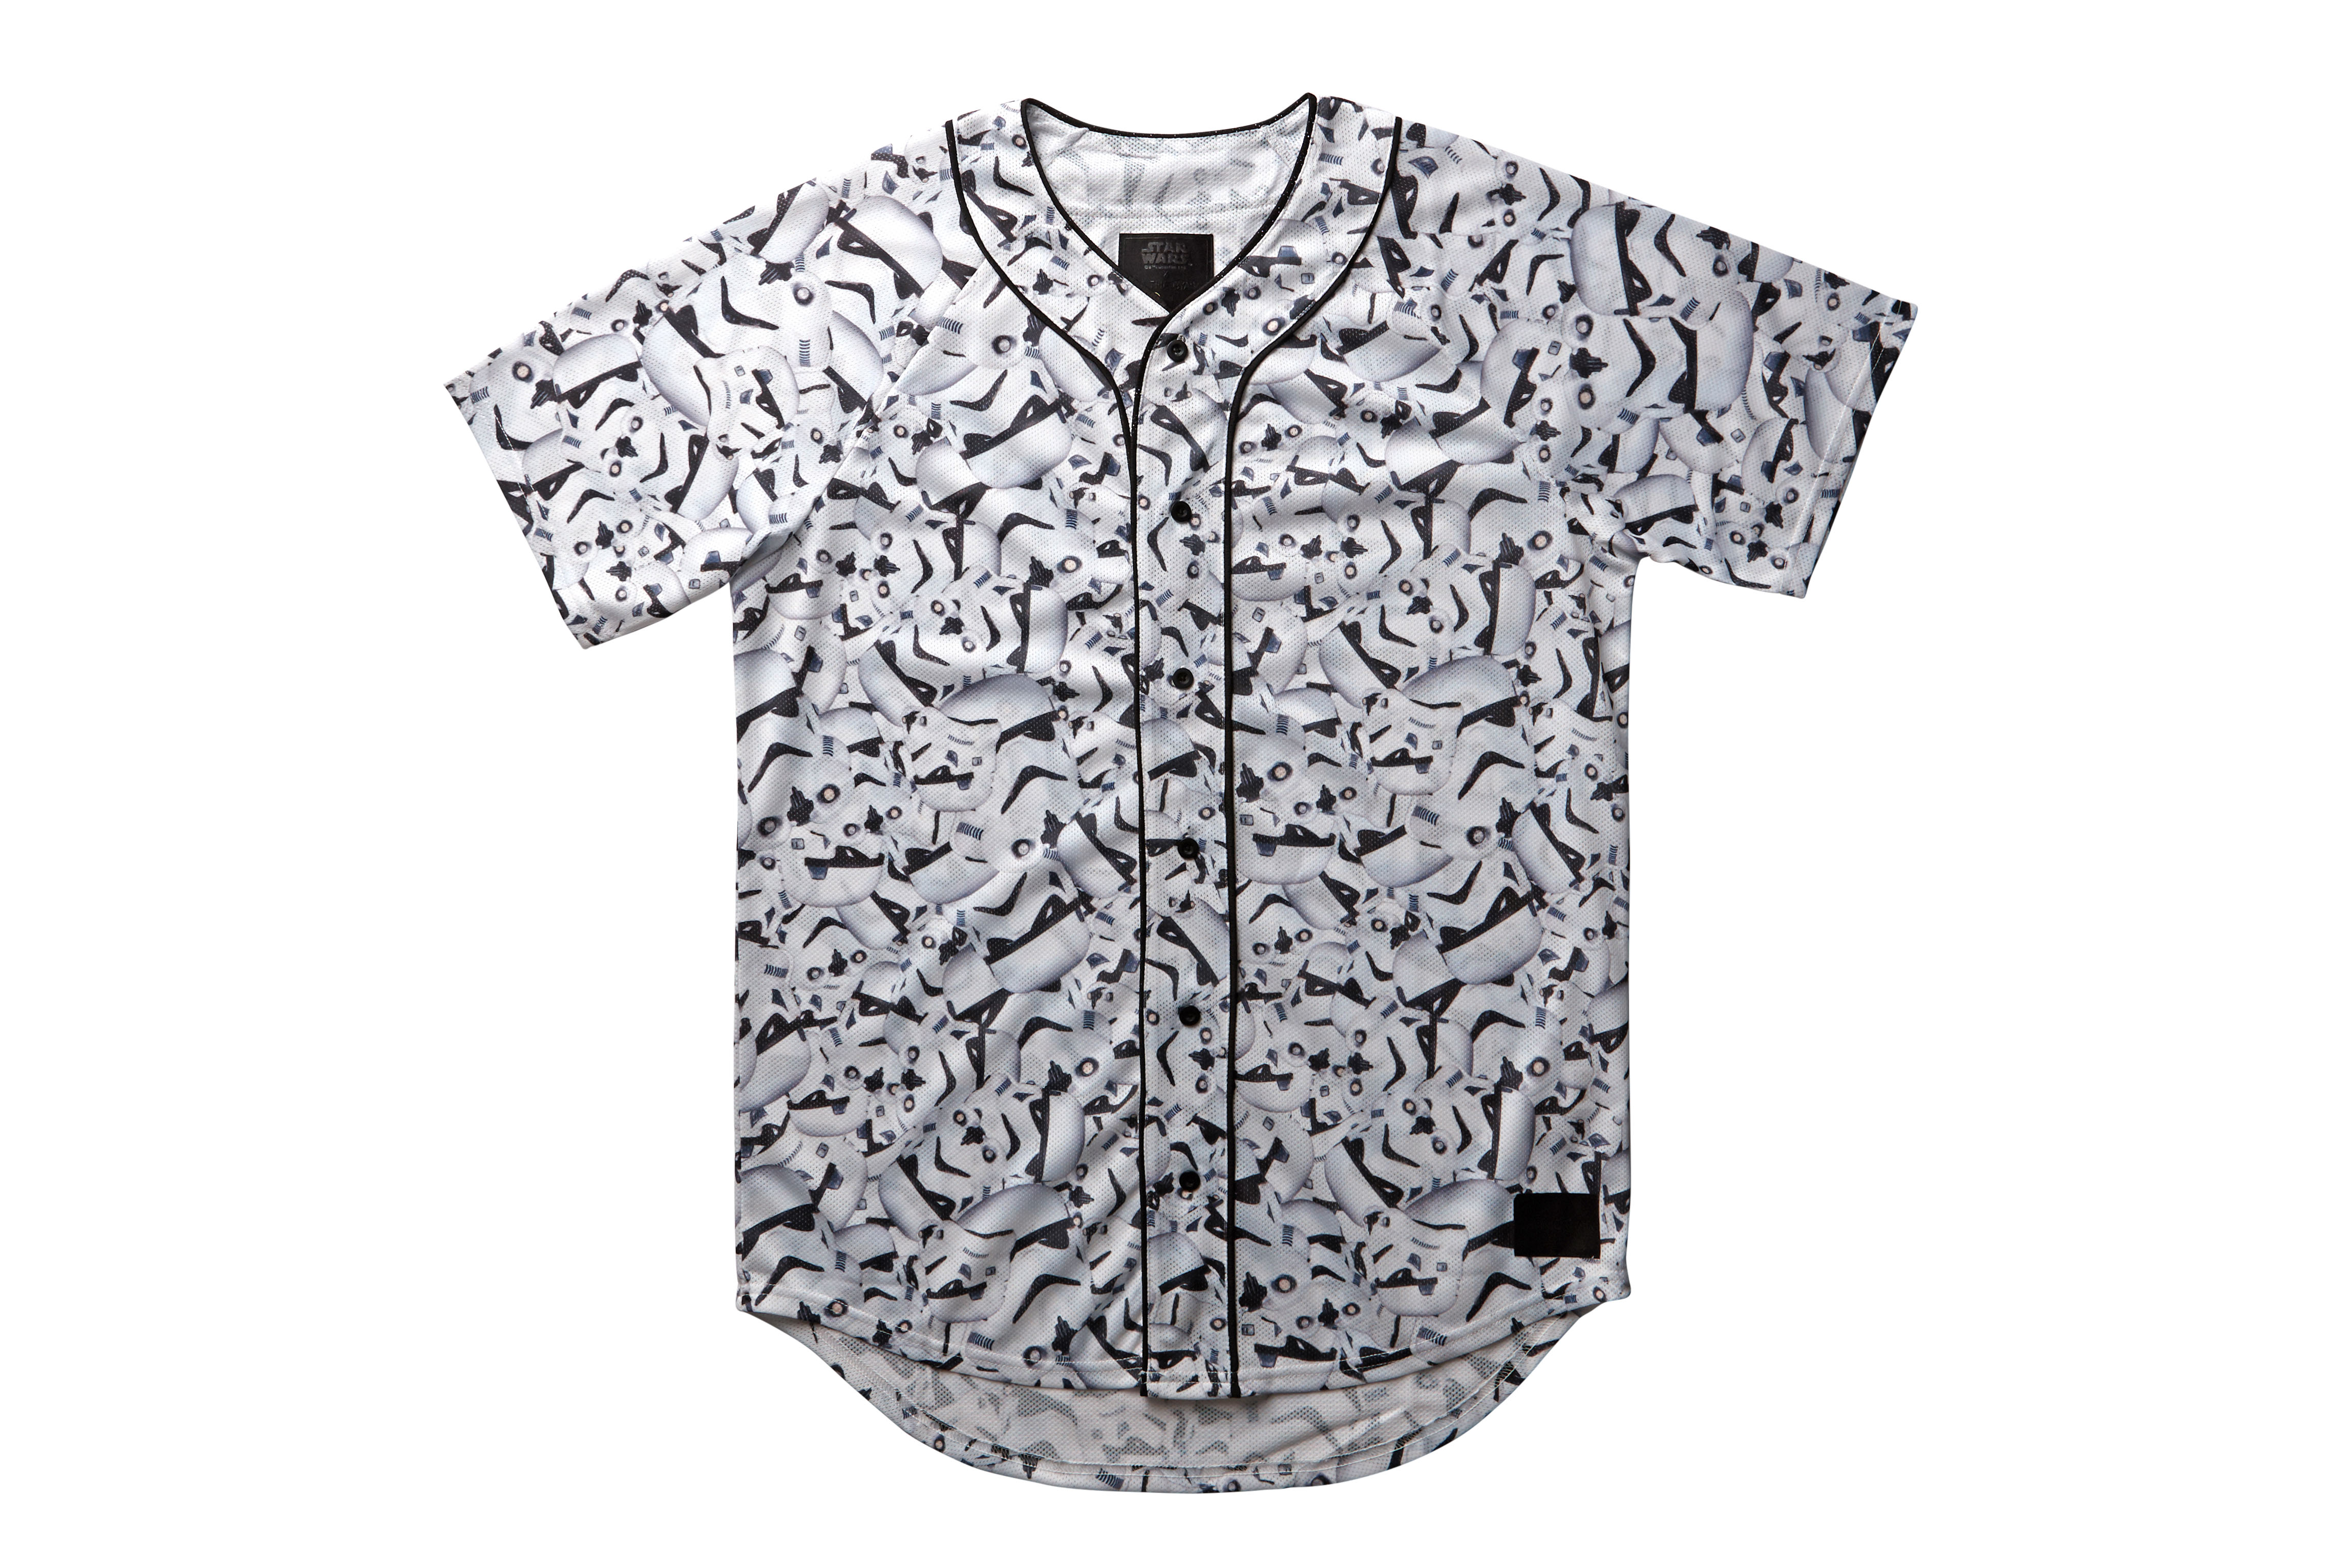 ... PacSun x Star Wars x On The Byas Collection - Hardwood and Hollywood